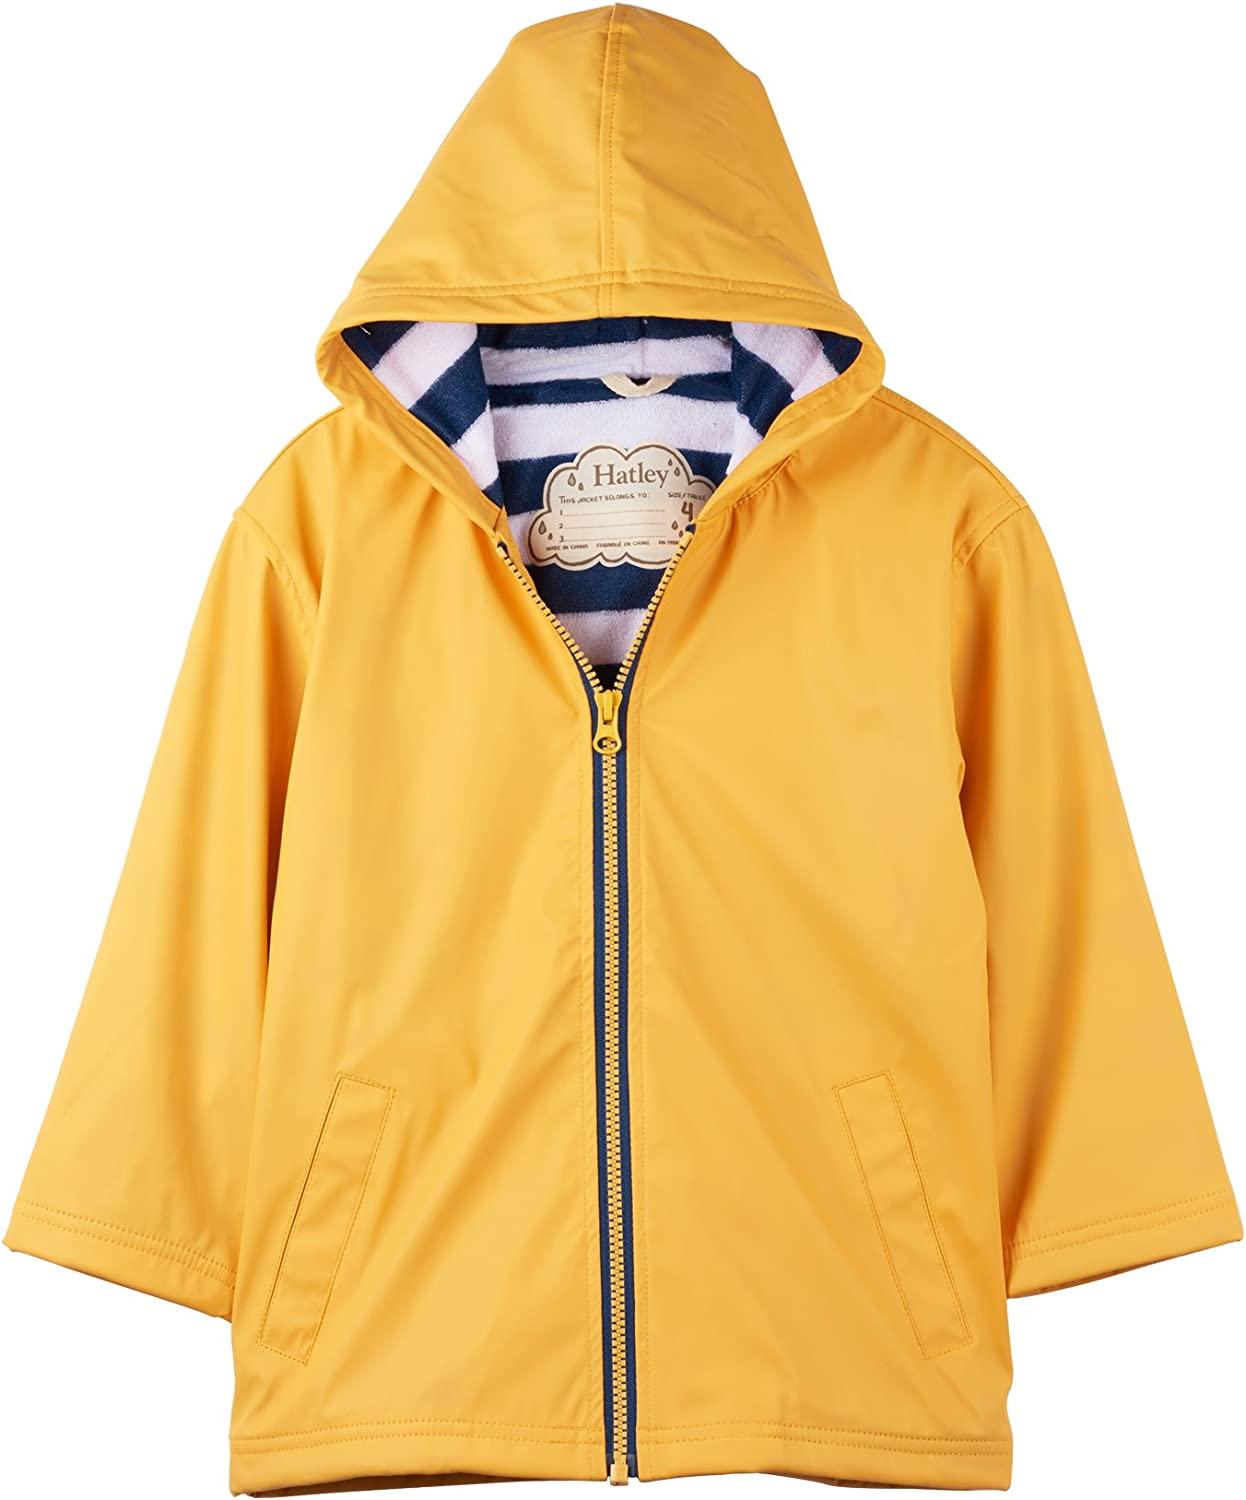 Hatley Boys' Splash Jacket